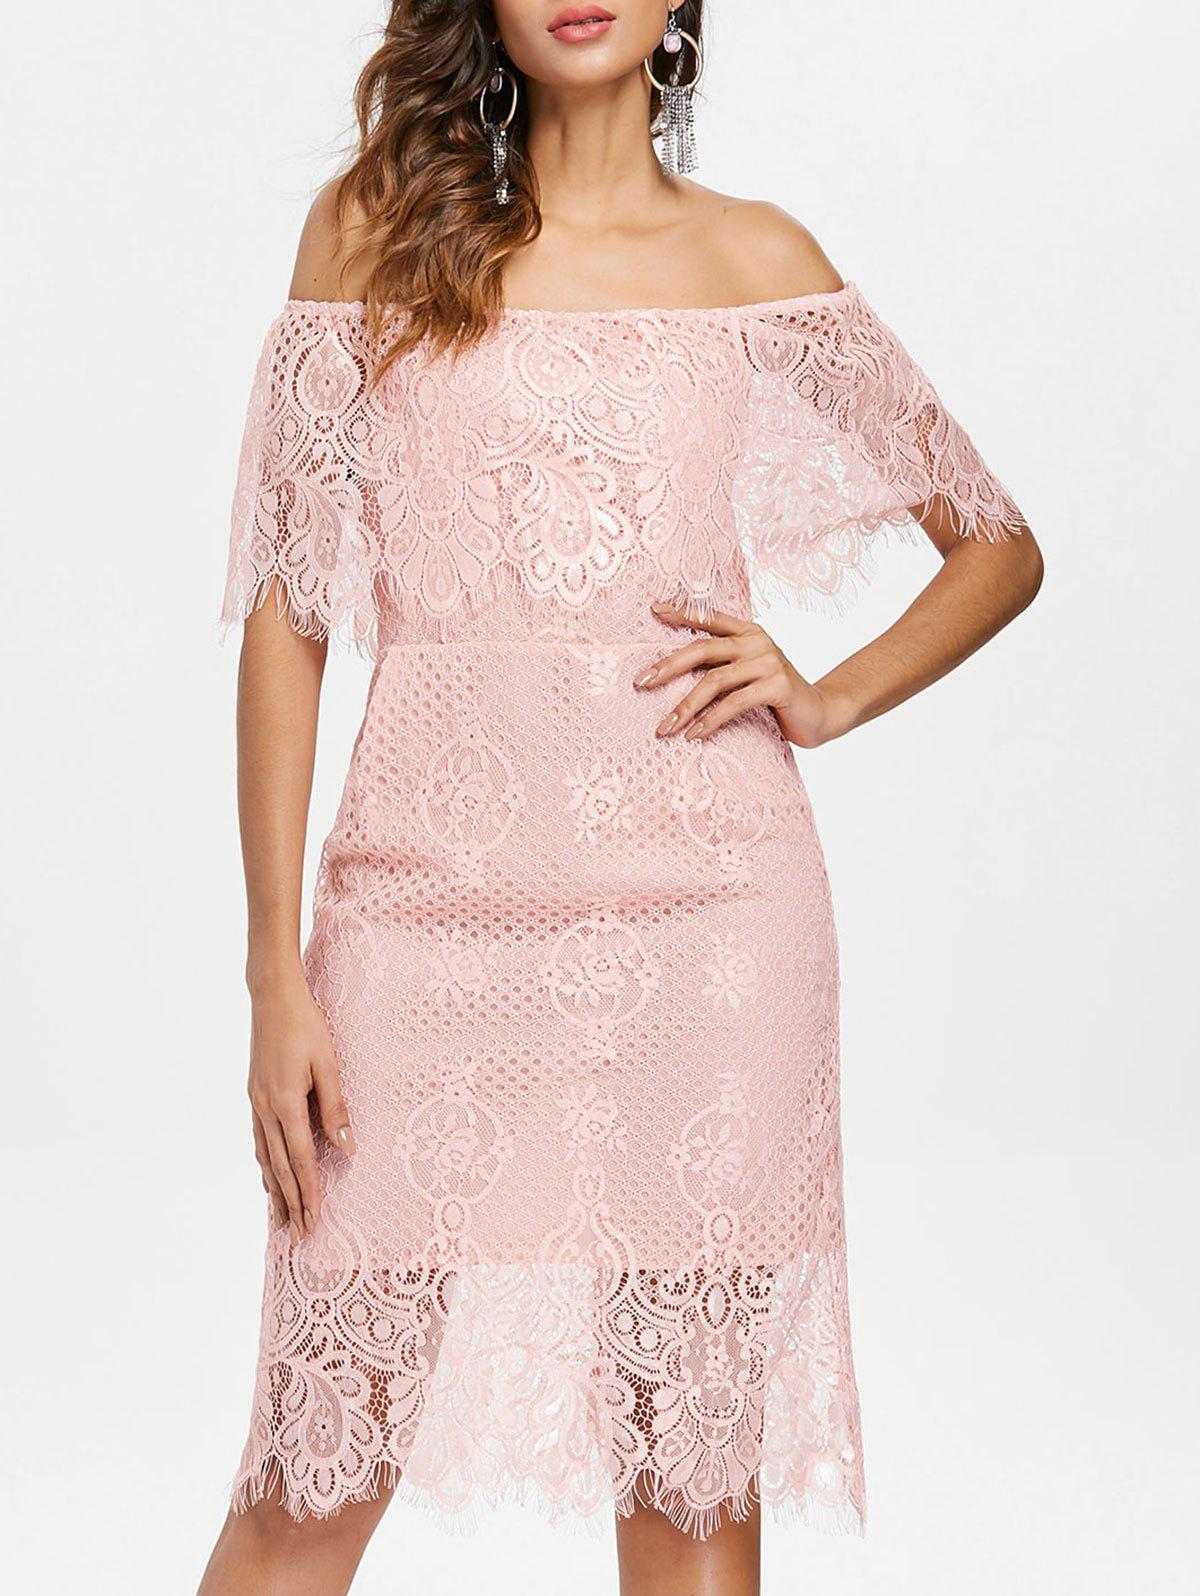 Off Shoulder Lace Party Dress фото